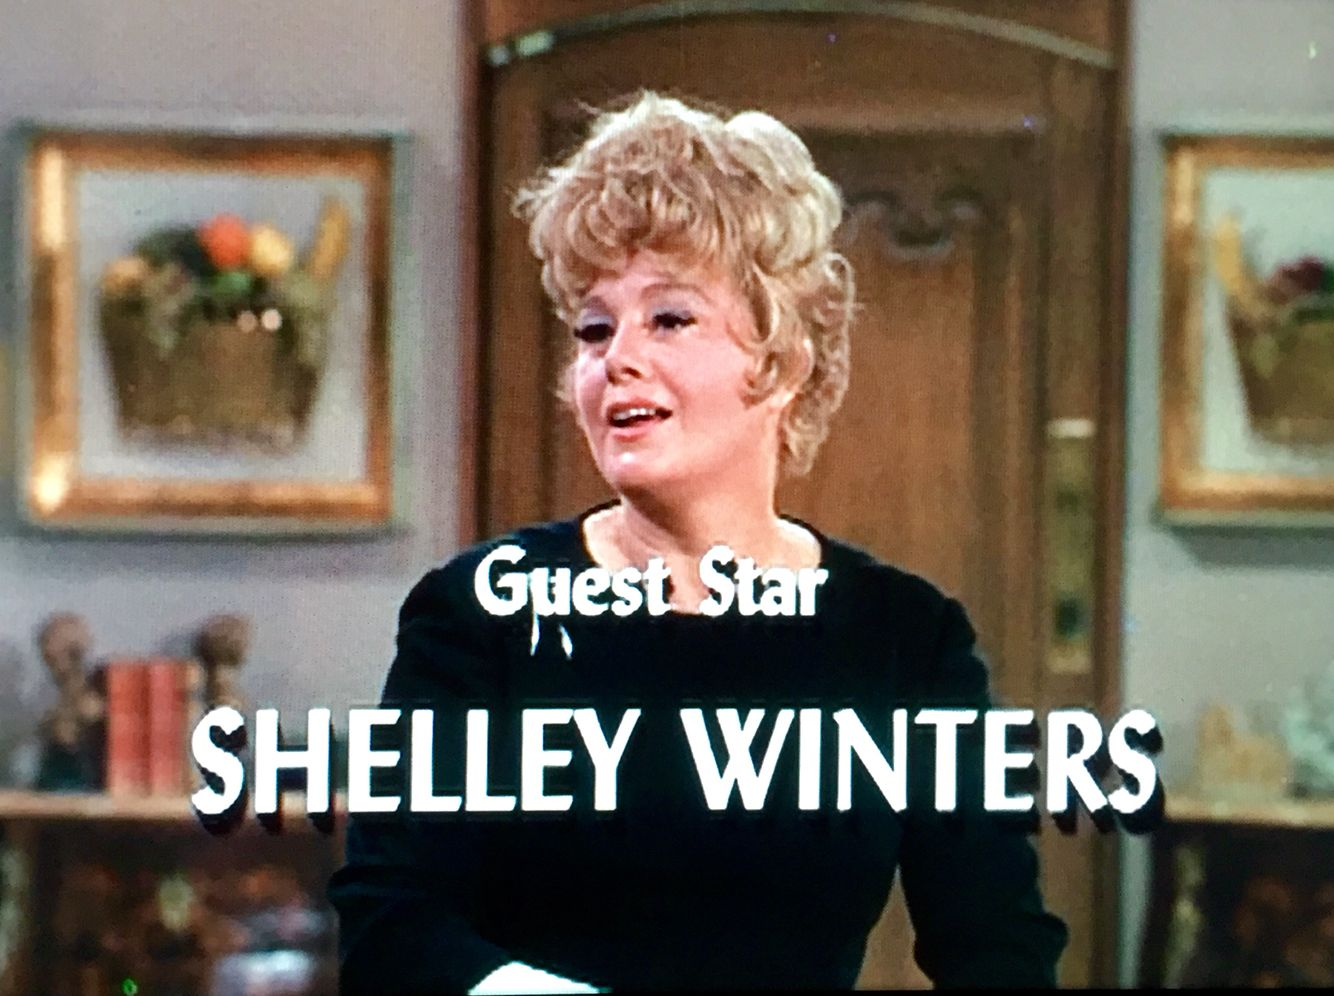 """Shelley guest stars on Here's Lucy, S1:E4 """"Lucy and Miss Shelley Winters"""""""